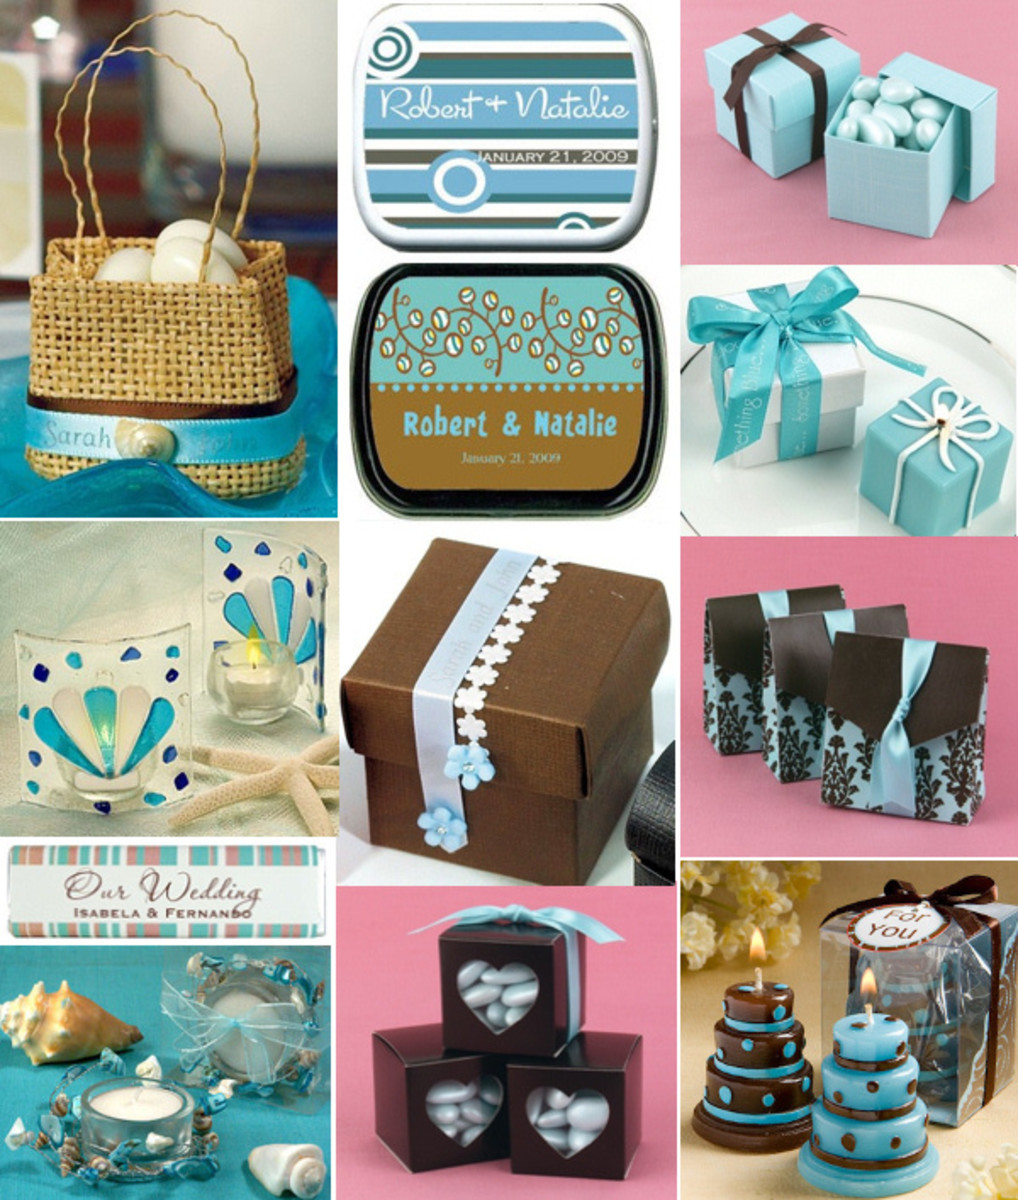 Blue & Brown Favors from Wedding Favors Unlimited